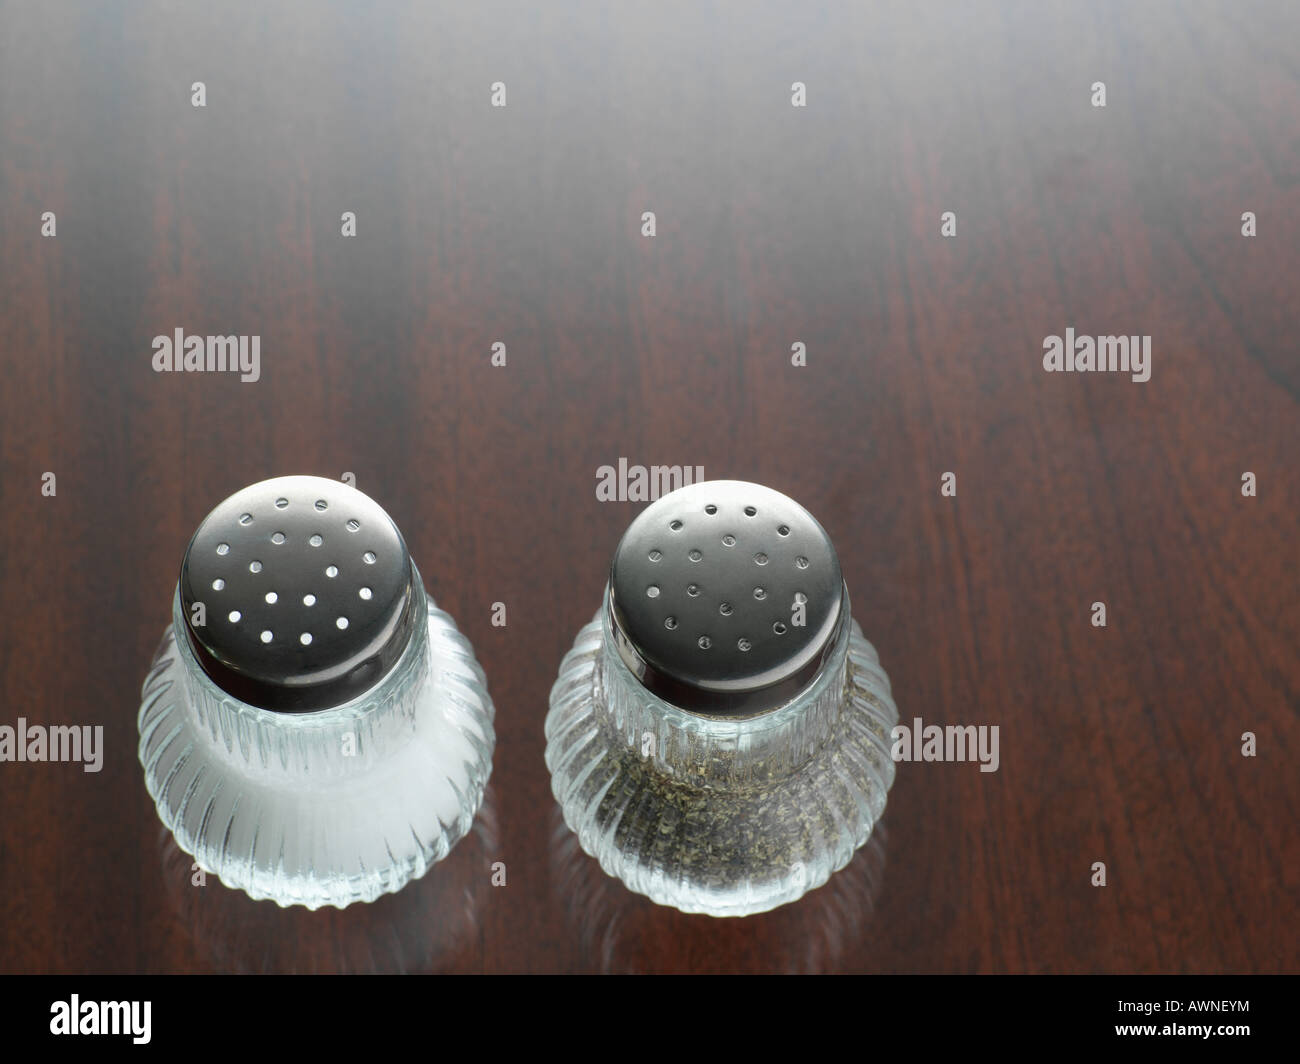 Salt and pepper - Stock Image